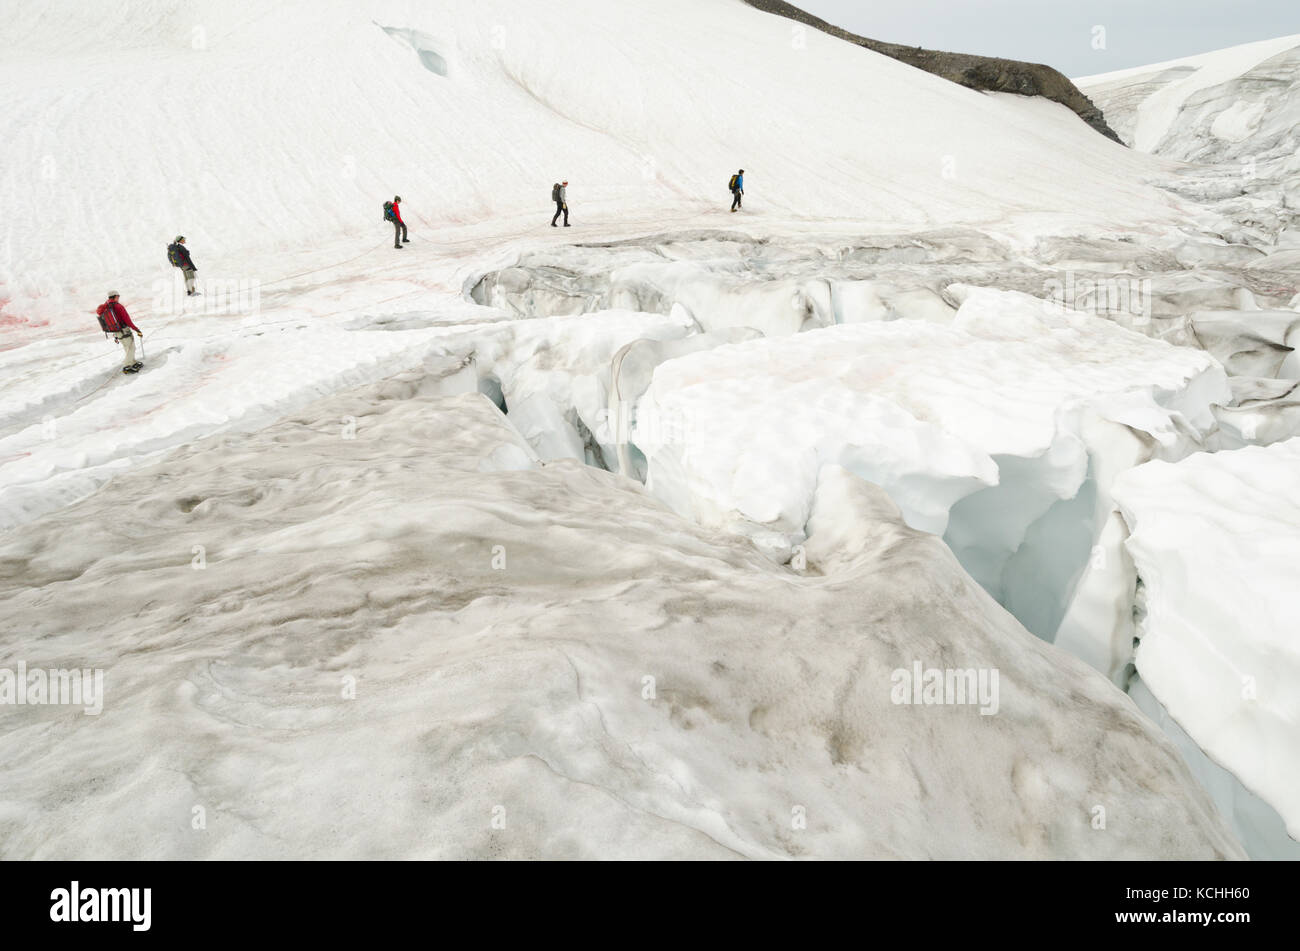 A group crosses a crevasse-ridden glacier near Icefall Lodge north of Golden, BC in the Canadian Rockies - Stock Image